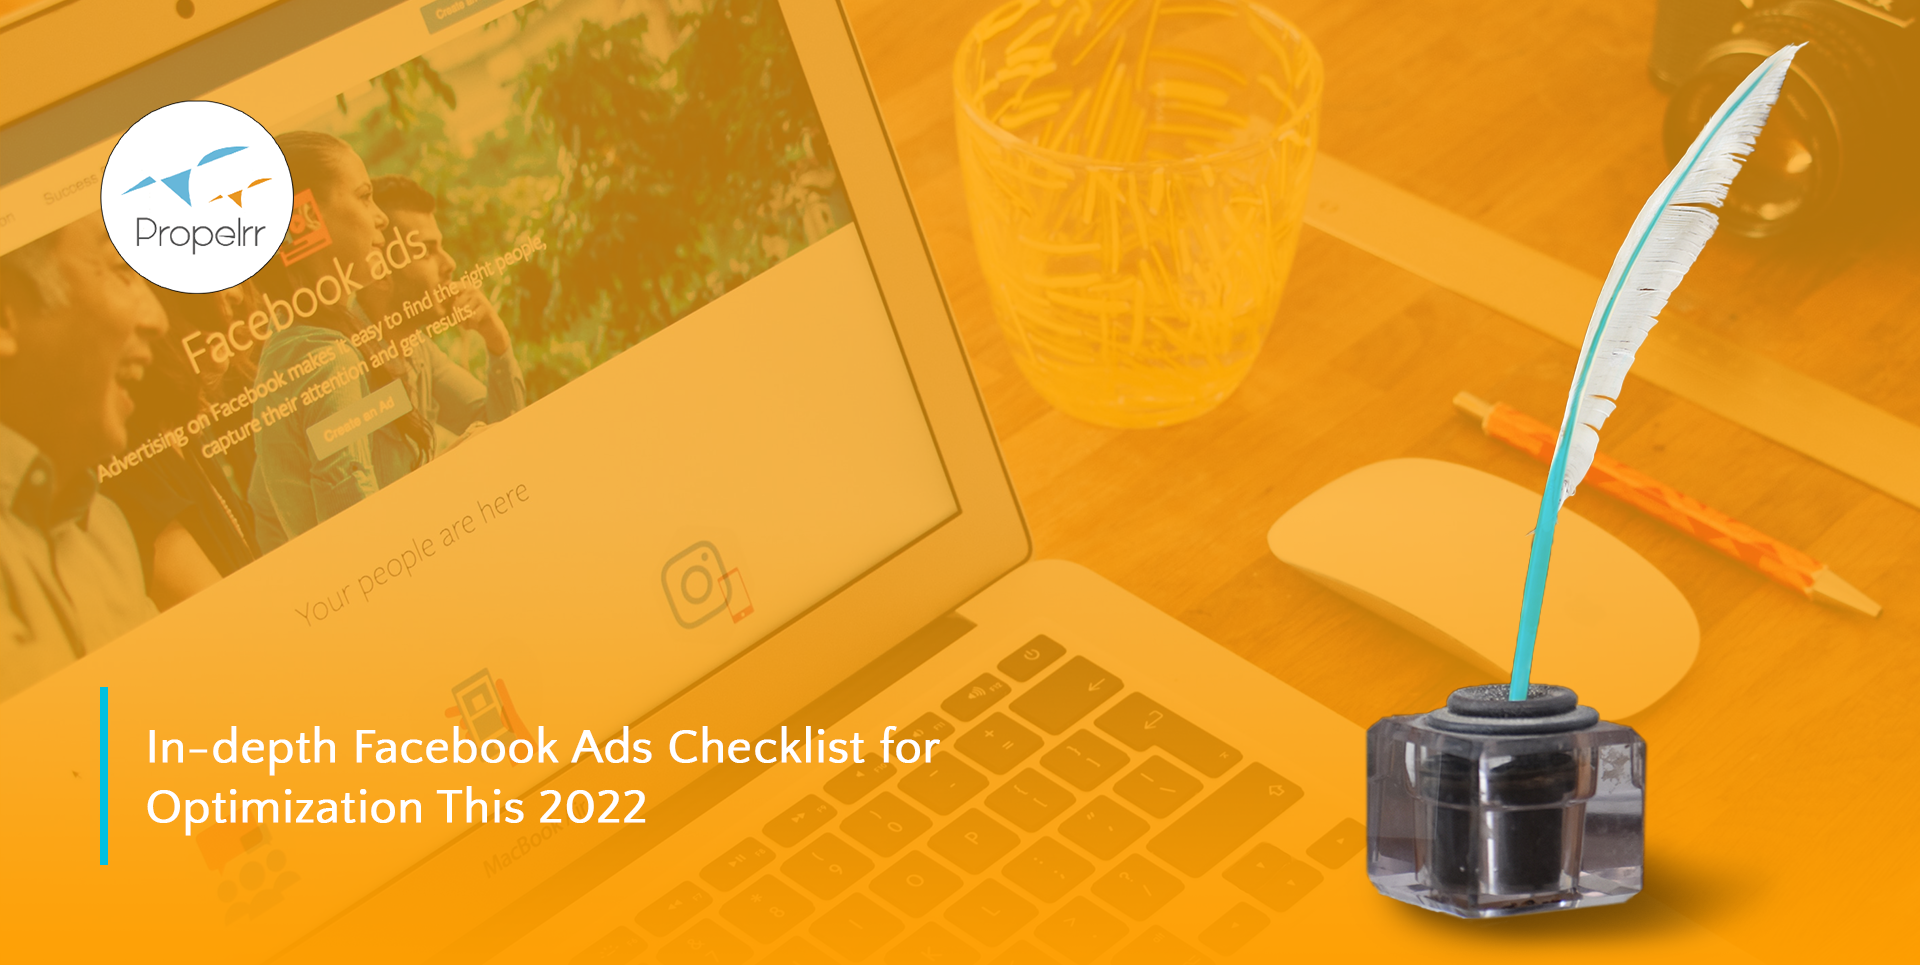 In-depth Facebook Ads Checklist for Optimization This 2022